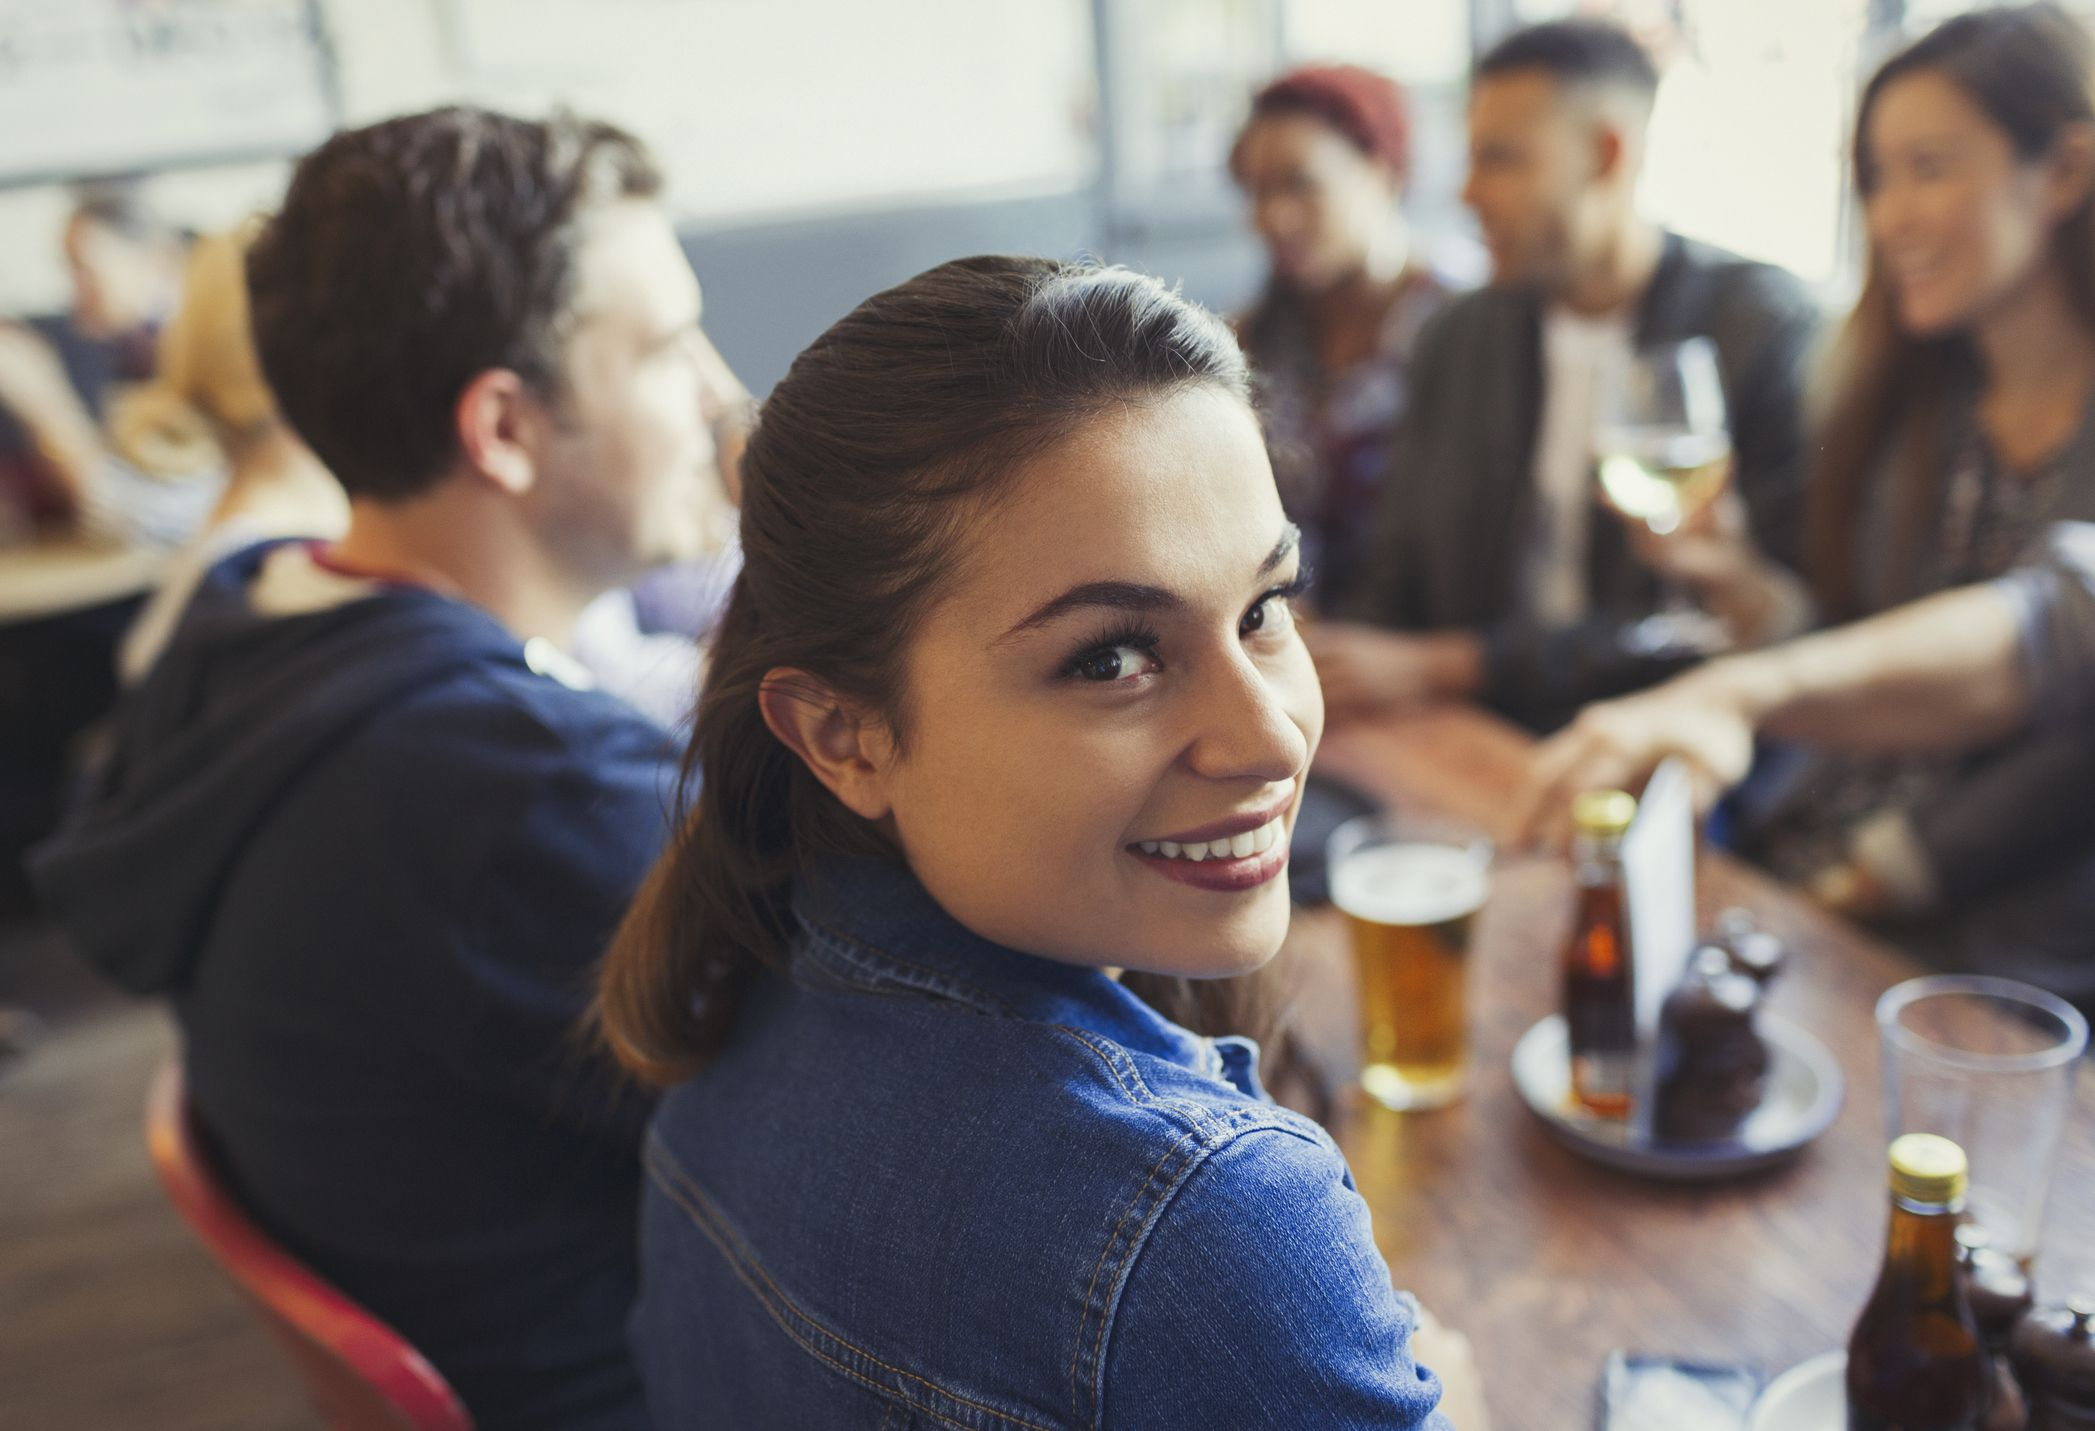 Speed dating tips and tricks